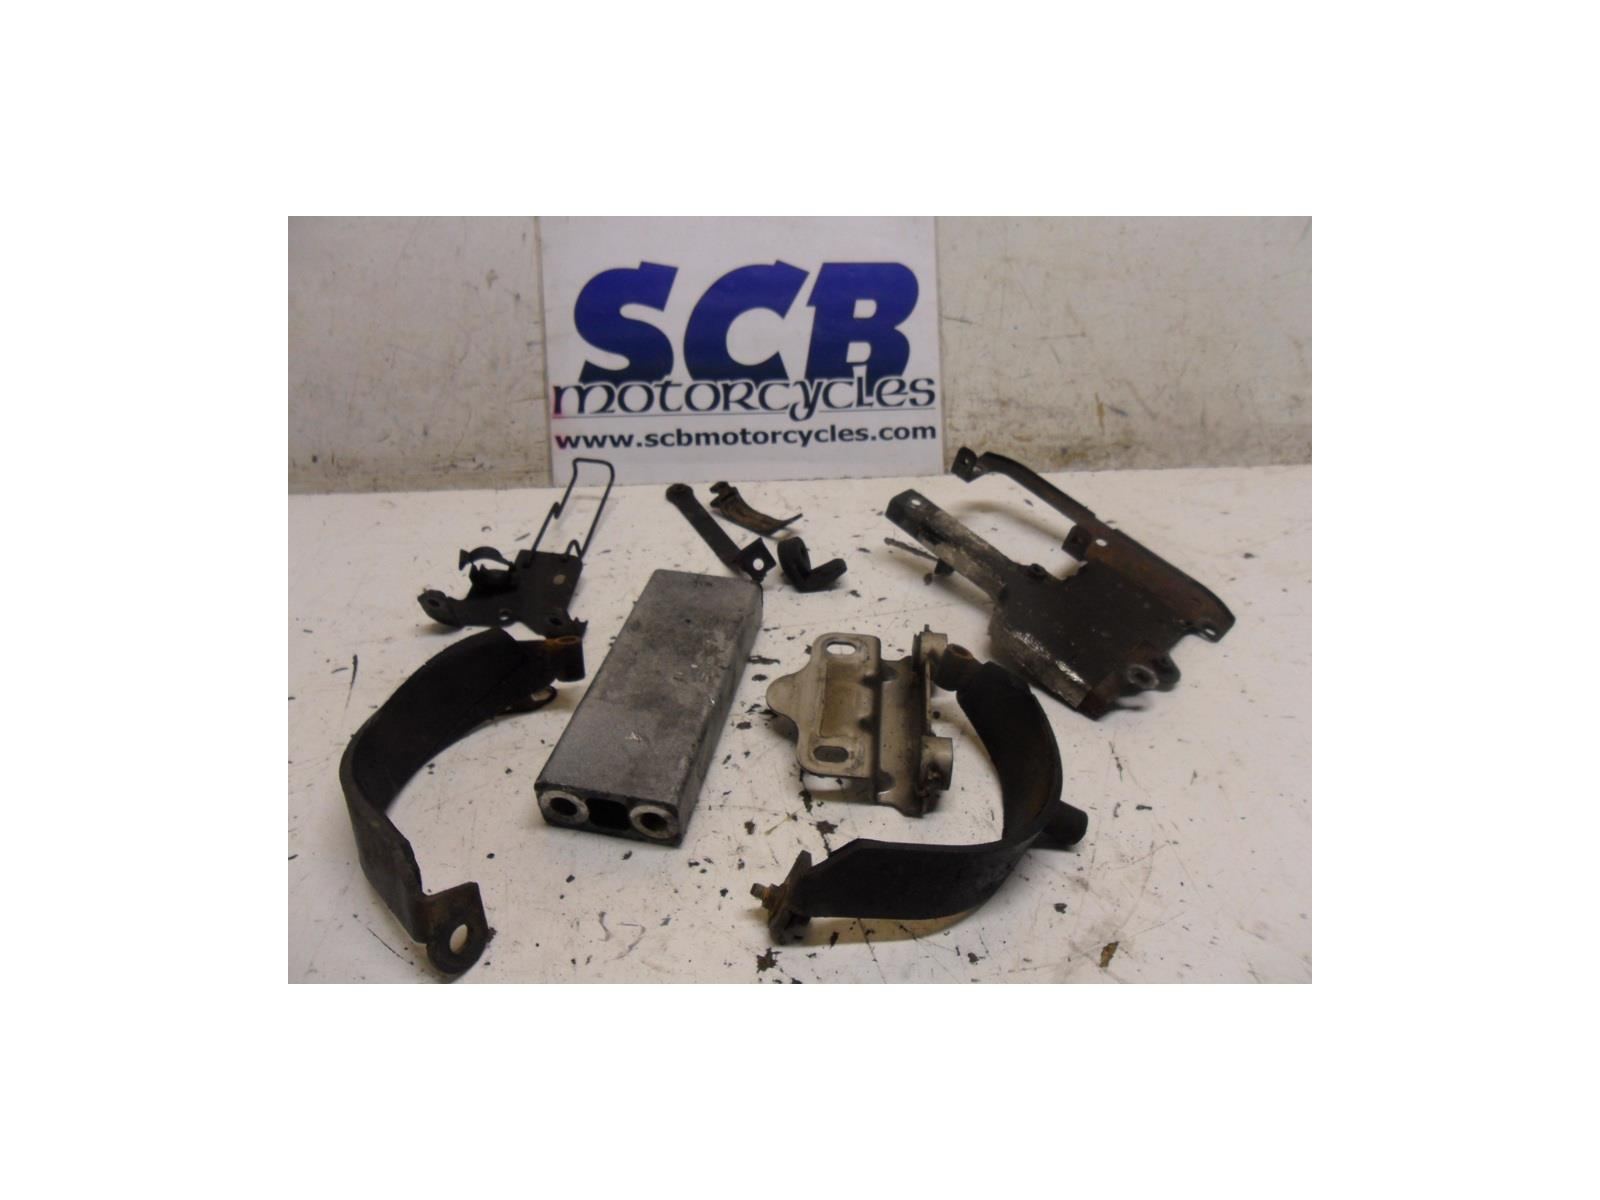 2004 Yamaha fz 6 s Assorted Brackets for sale from SCB